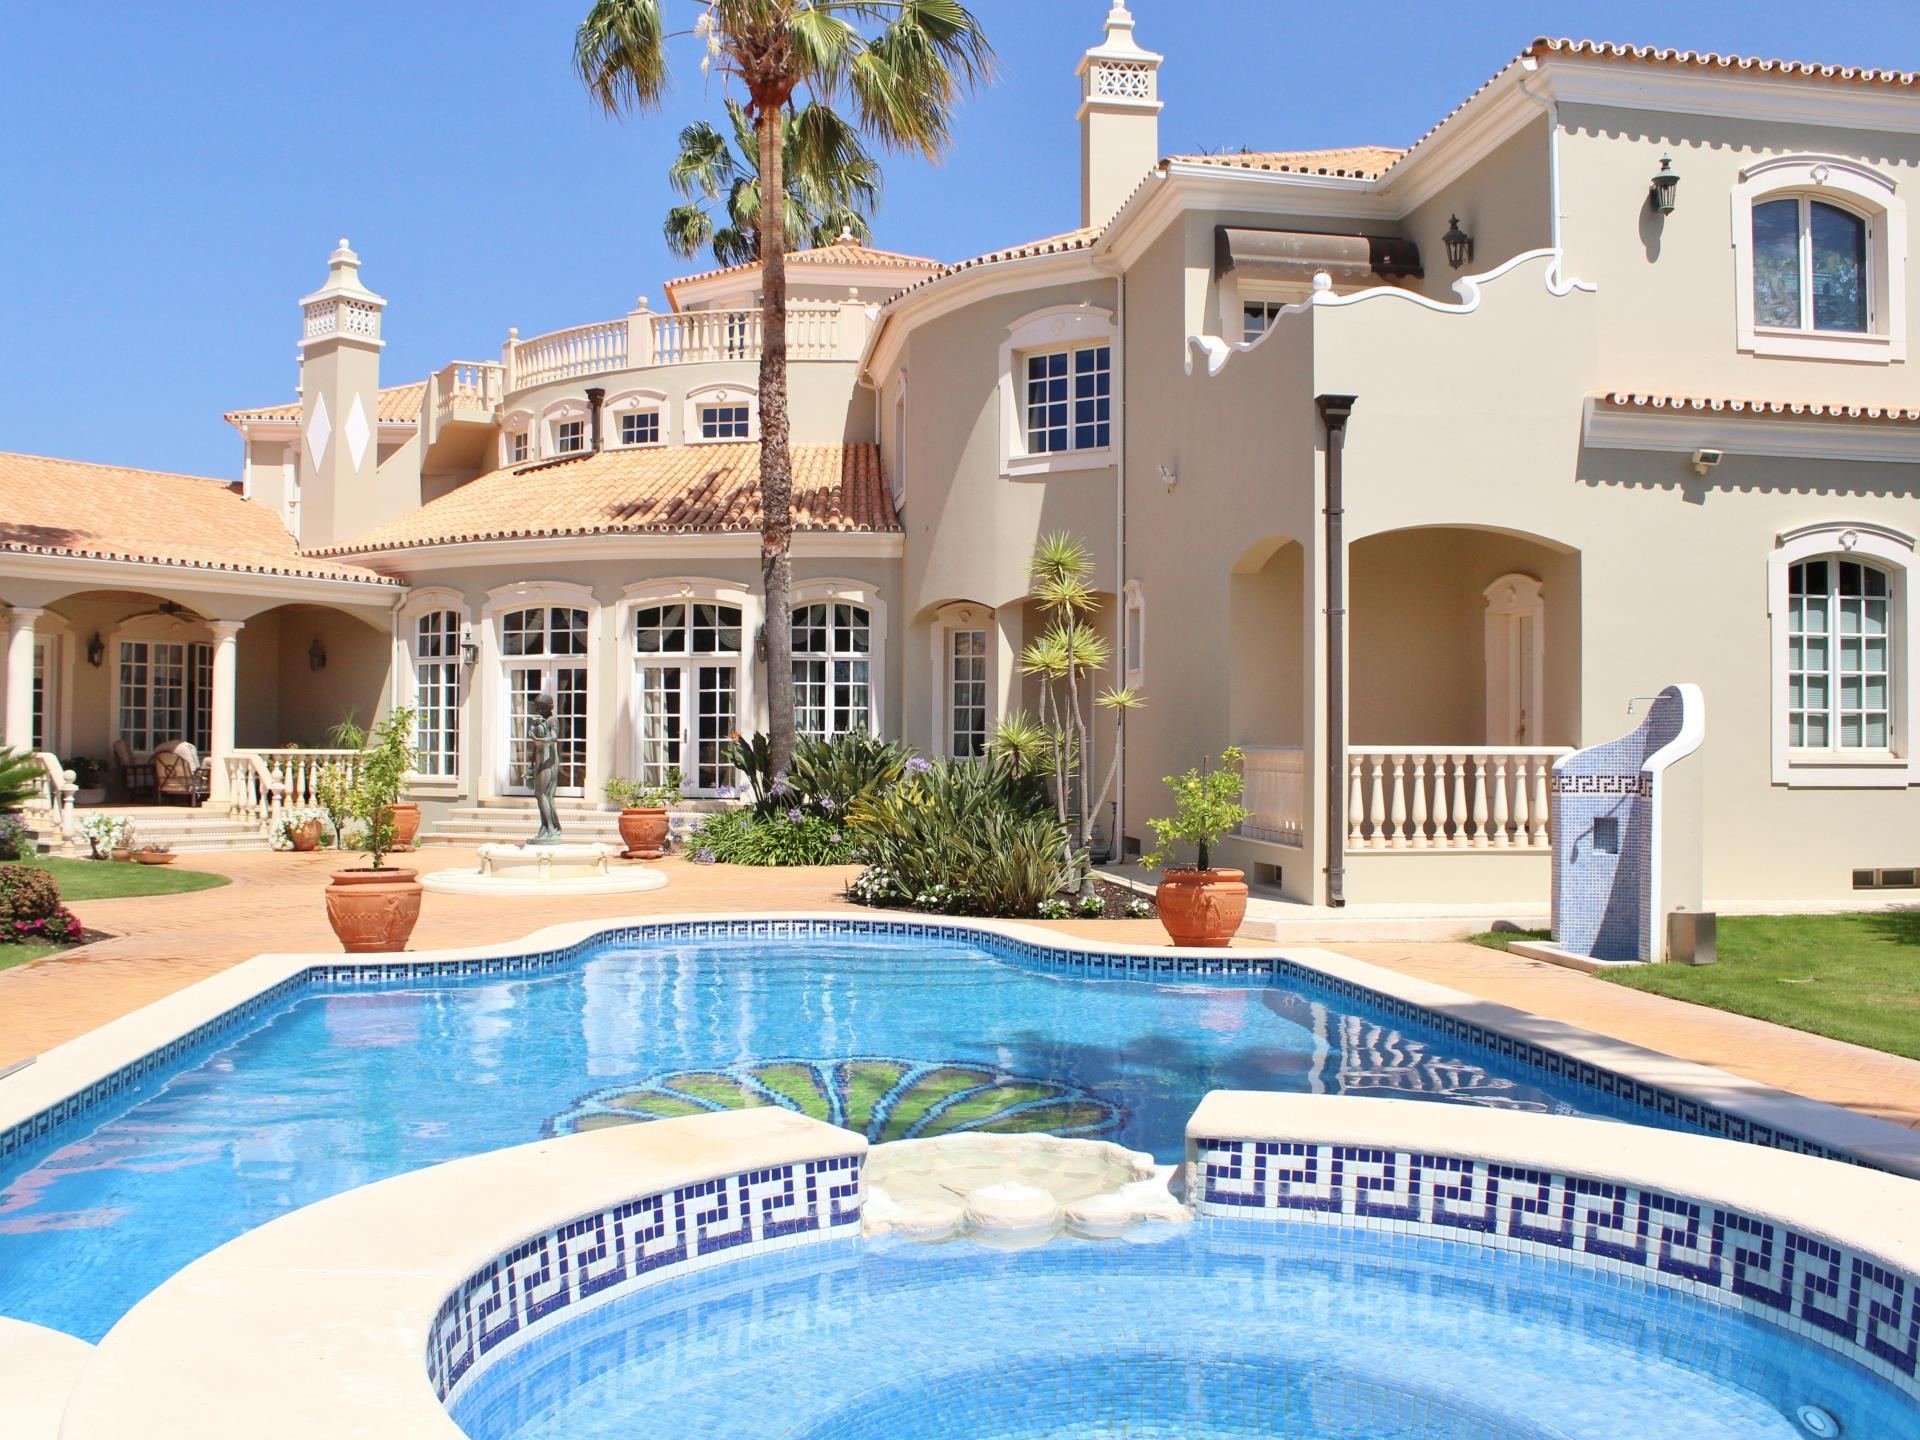 Villa per Vendita alle ore Detached house, 5 bedrooms, for Sale Loule, Algarve Portogallo